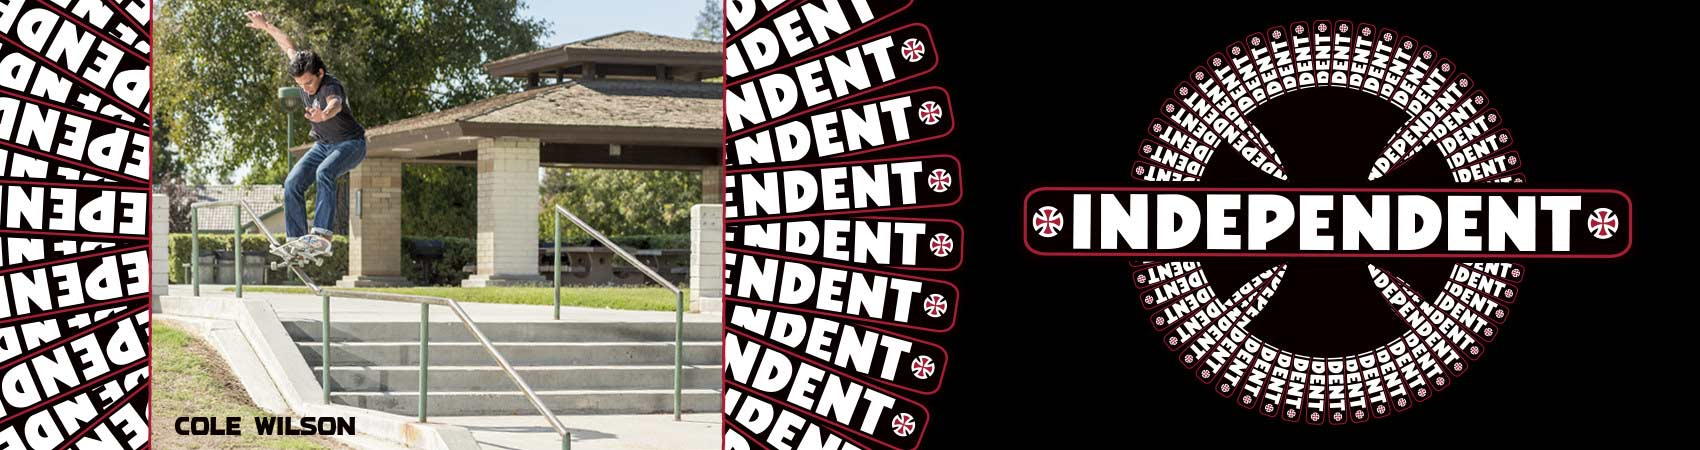 Independent Trucks Banner